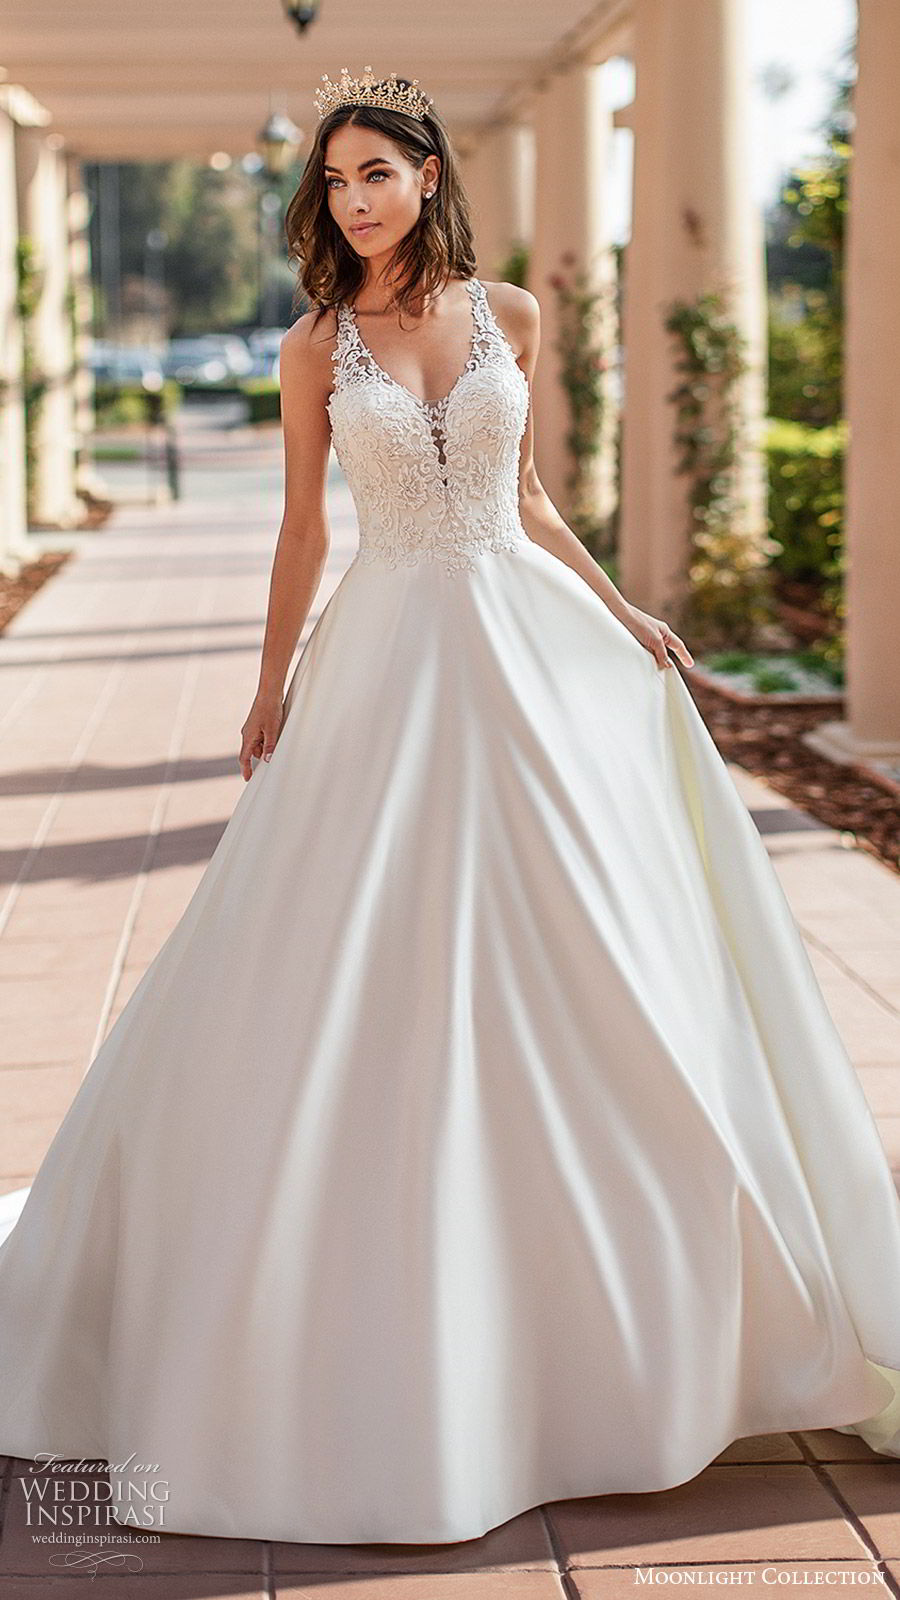 moonlight collection fall 2019 bridal sleeveless illusion straps sheer vneck sweetheart embellished bodice a line ball gown wedding dress (4) princess elegant romantic racer back chapel train mv